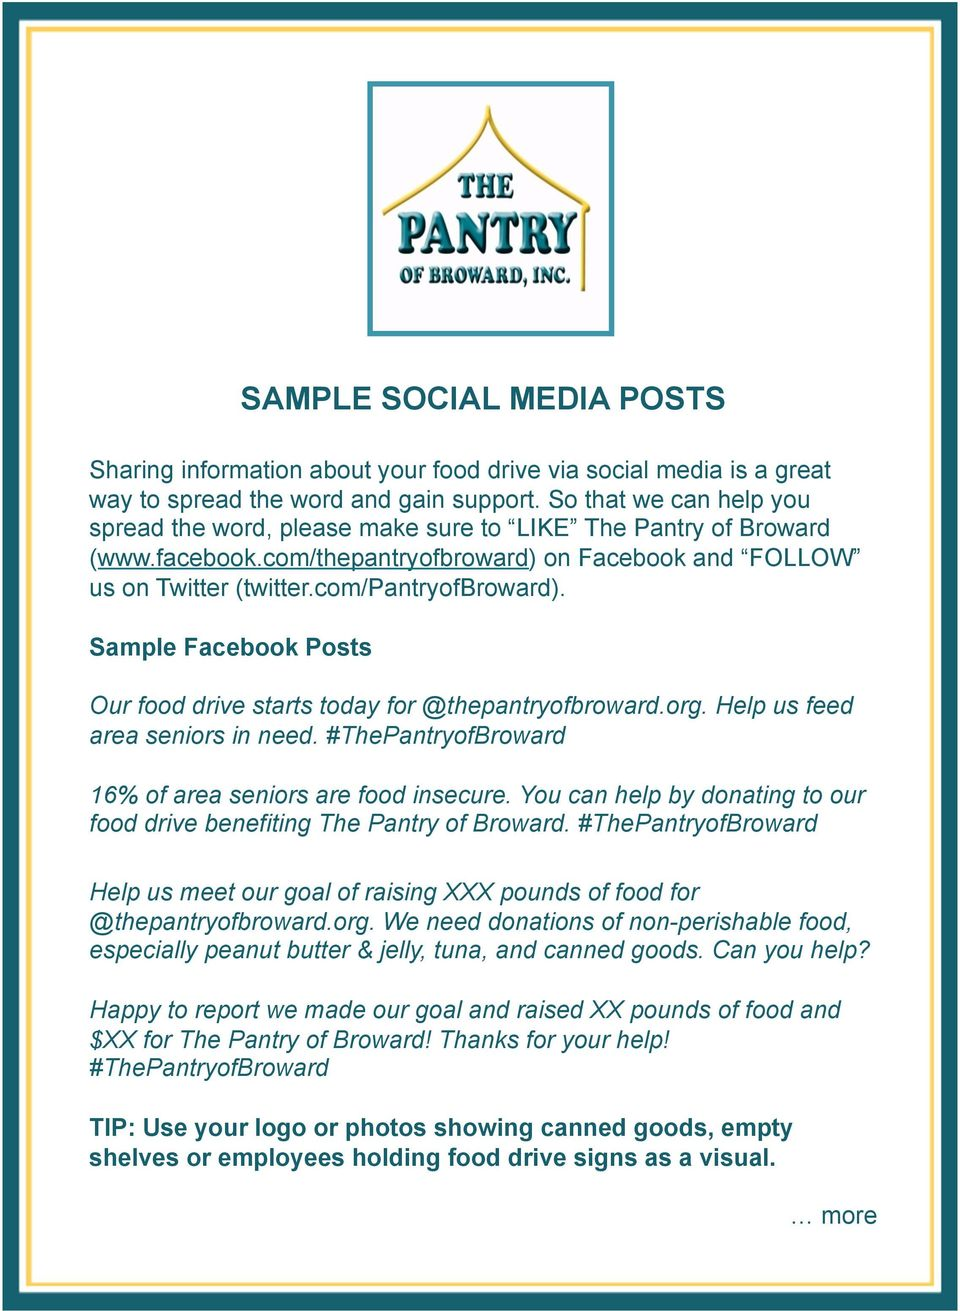 Sample Facebook Posts Our food drive starts today for @thepantryofbroward.org. Help us feed area seniors in need. #ThePantryofBroward 16% of area seniors are food insecure.